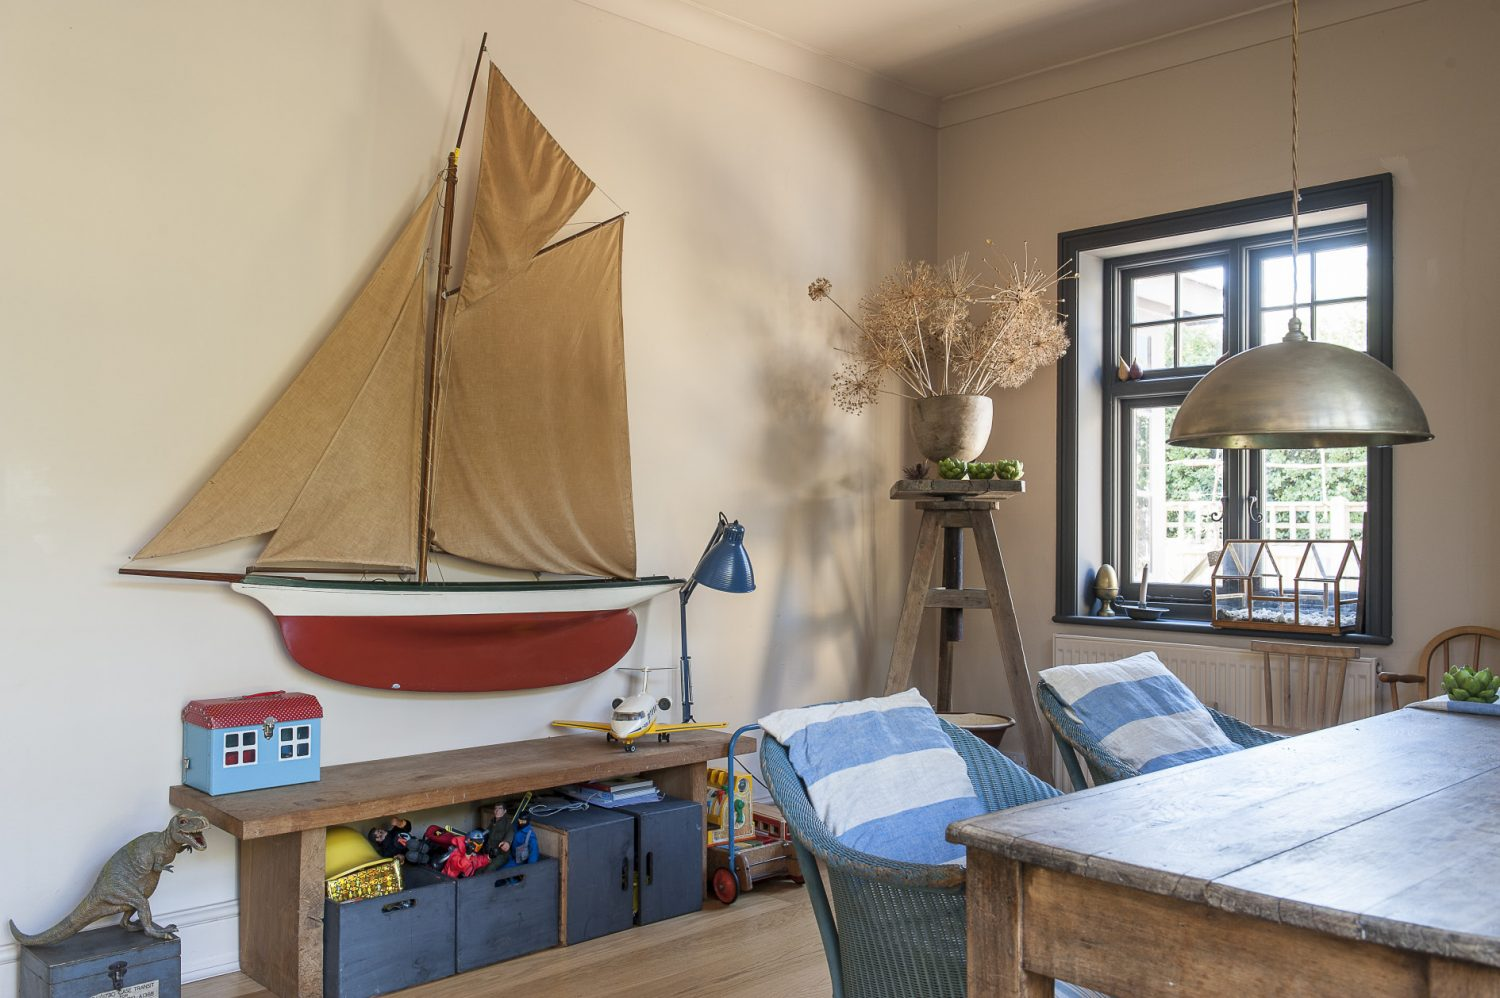 A toy-filled corner includes a model boat which Francine bought for her husband, when they got married, from a shop in Peckham